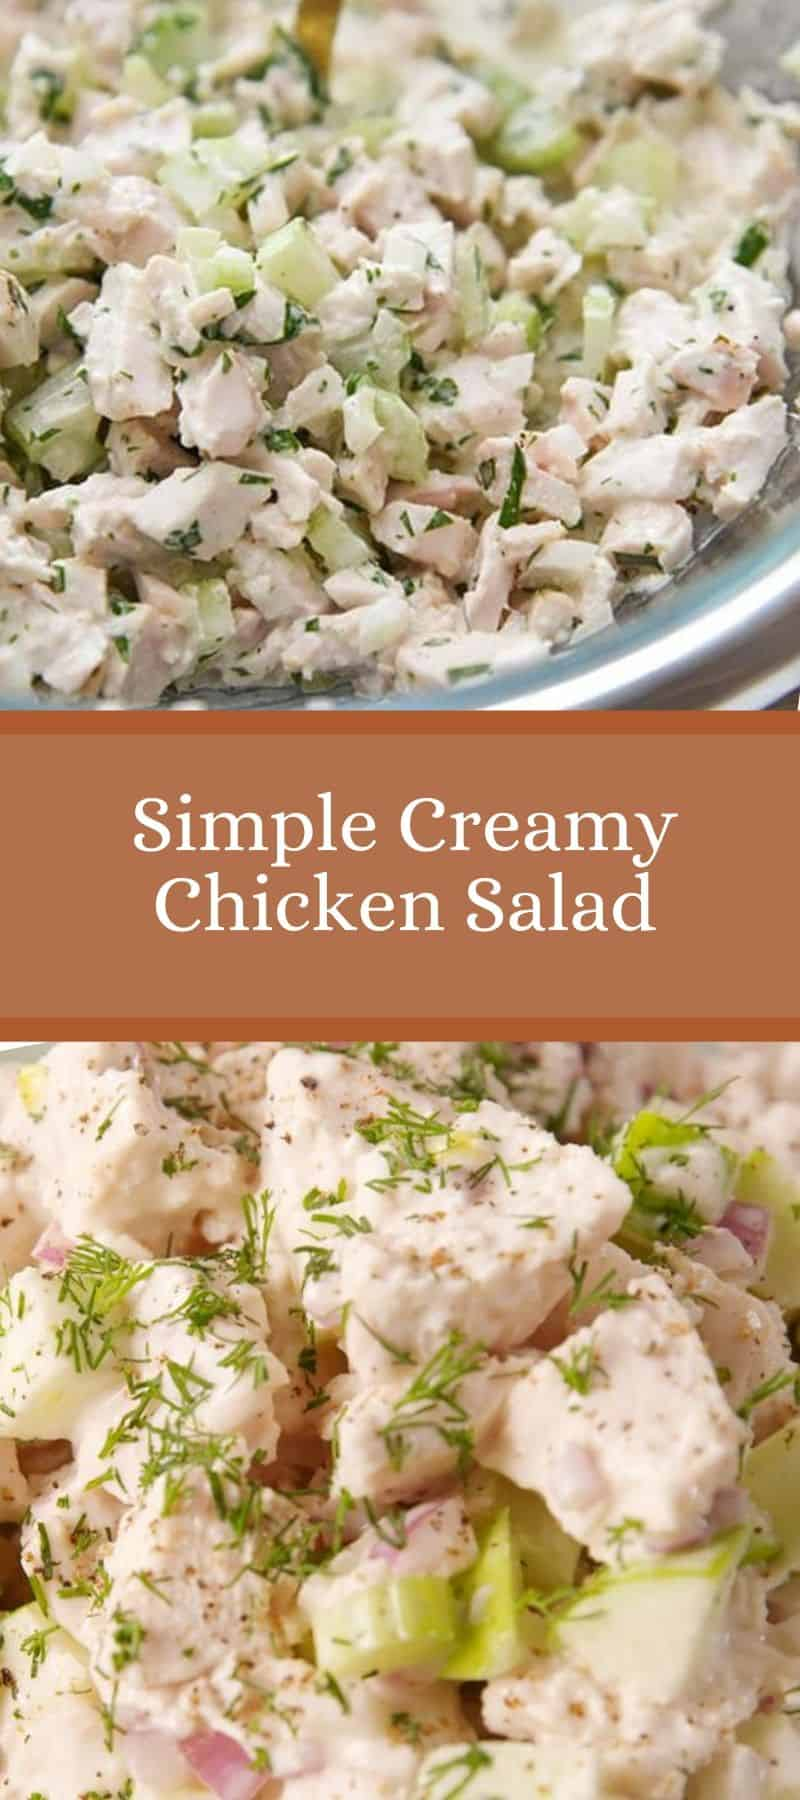 Simple Creamy Chicken Salad Recipe 3